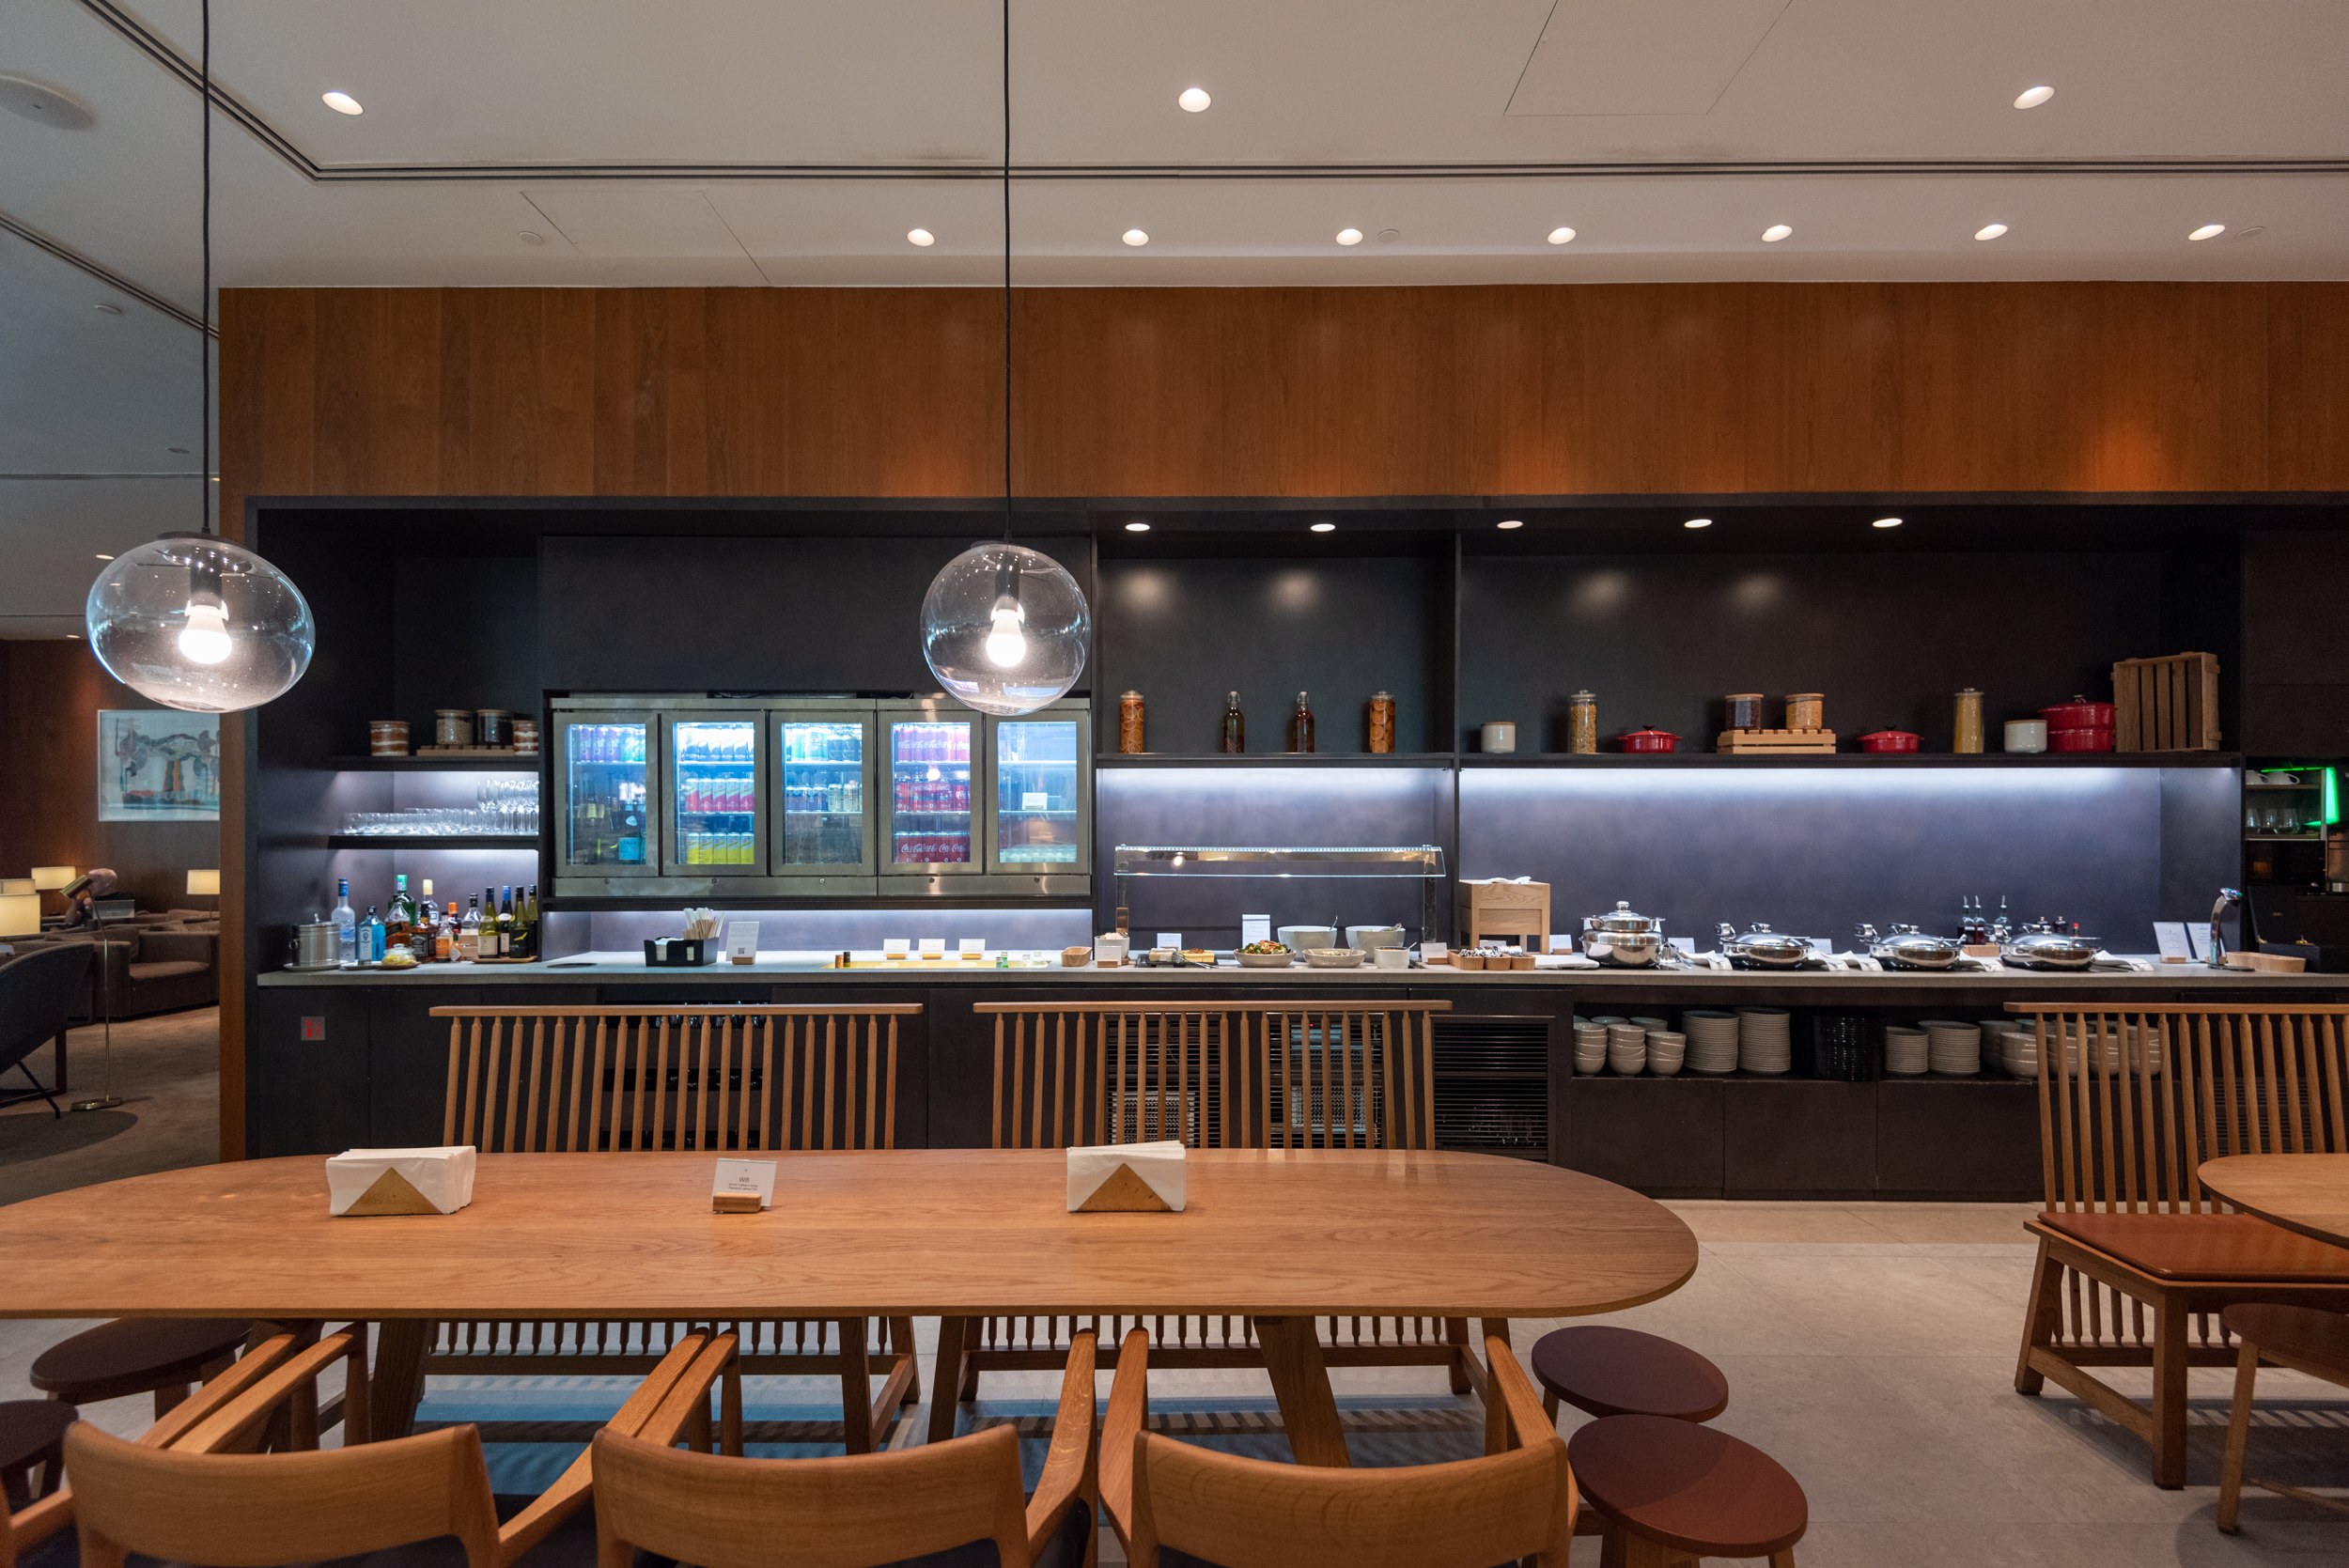 Self-serve Area  Cathay Pacific Lounge (Terminal 4) - Singapore Changi Airport (SIN)